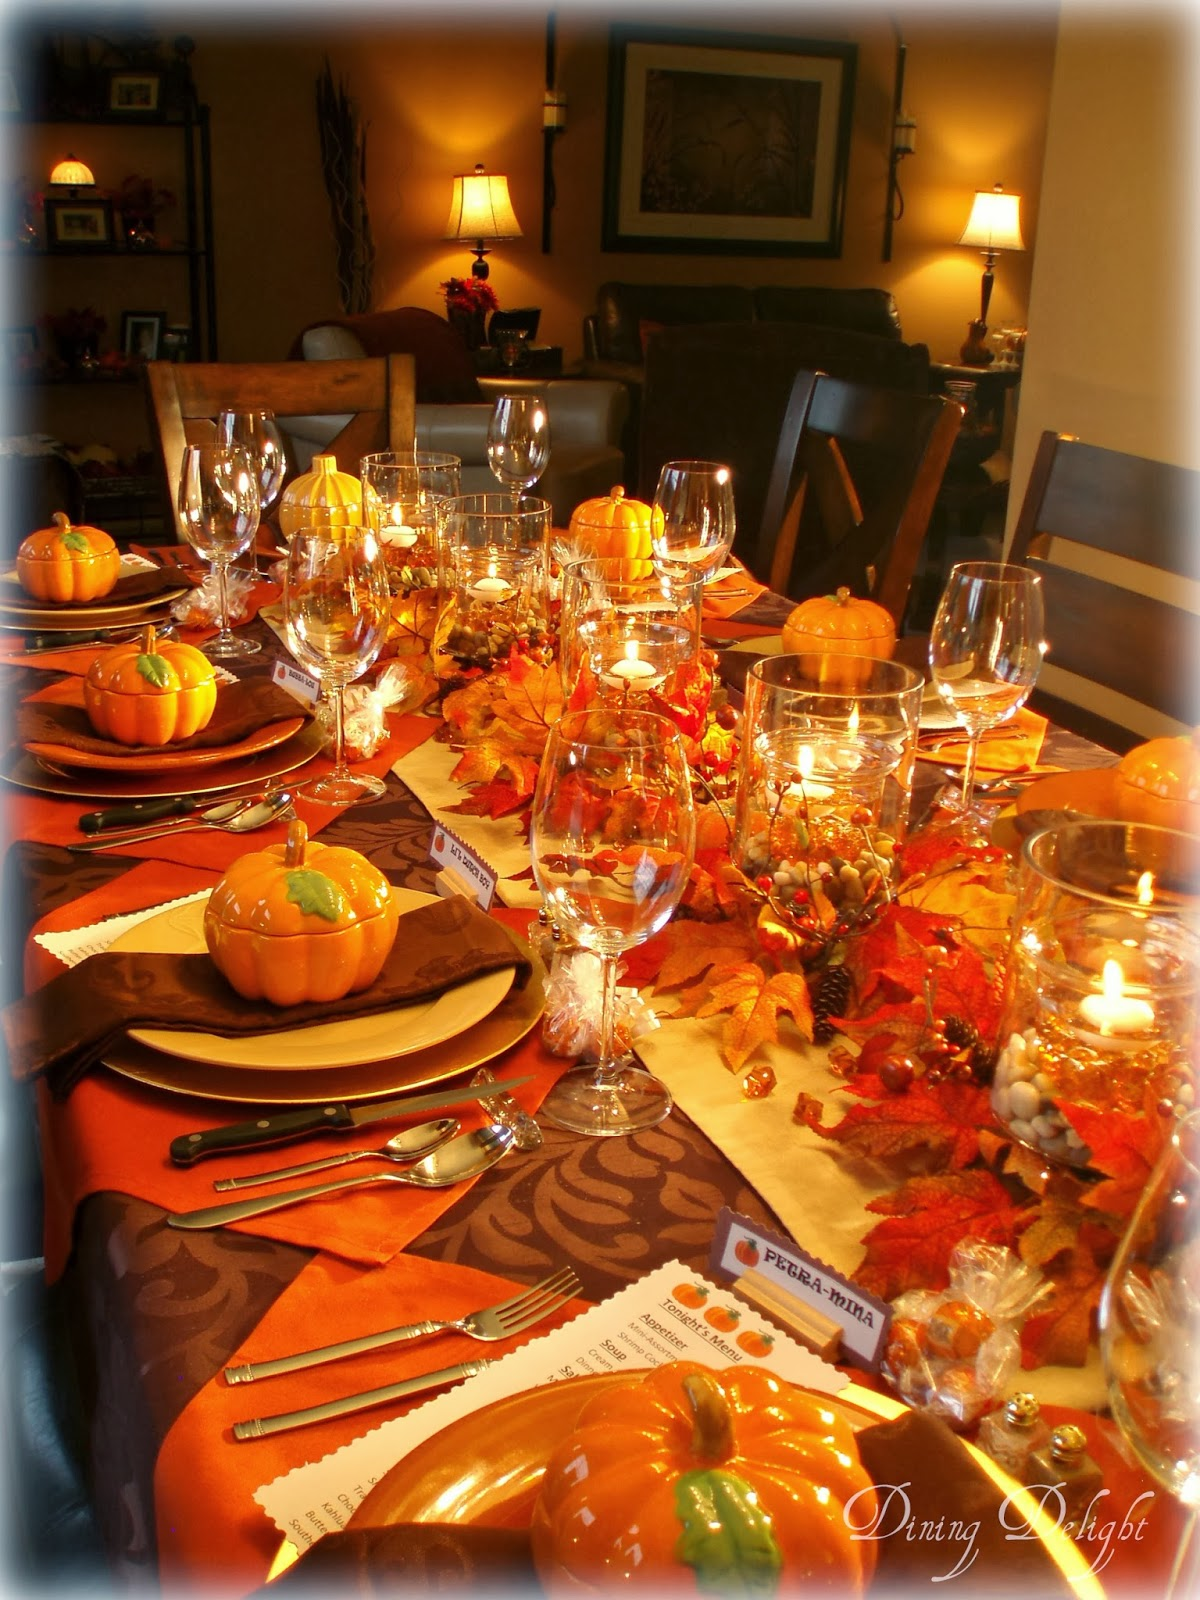 Dining delight fall dinner party for ten - Dining table setting ideas ...